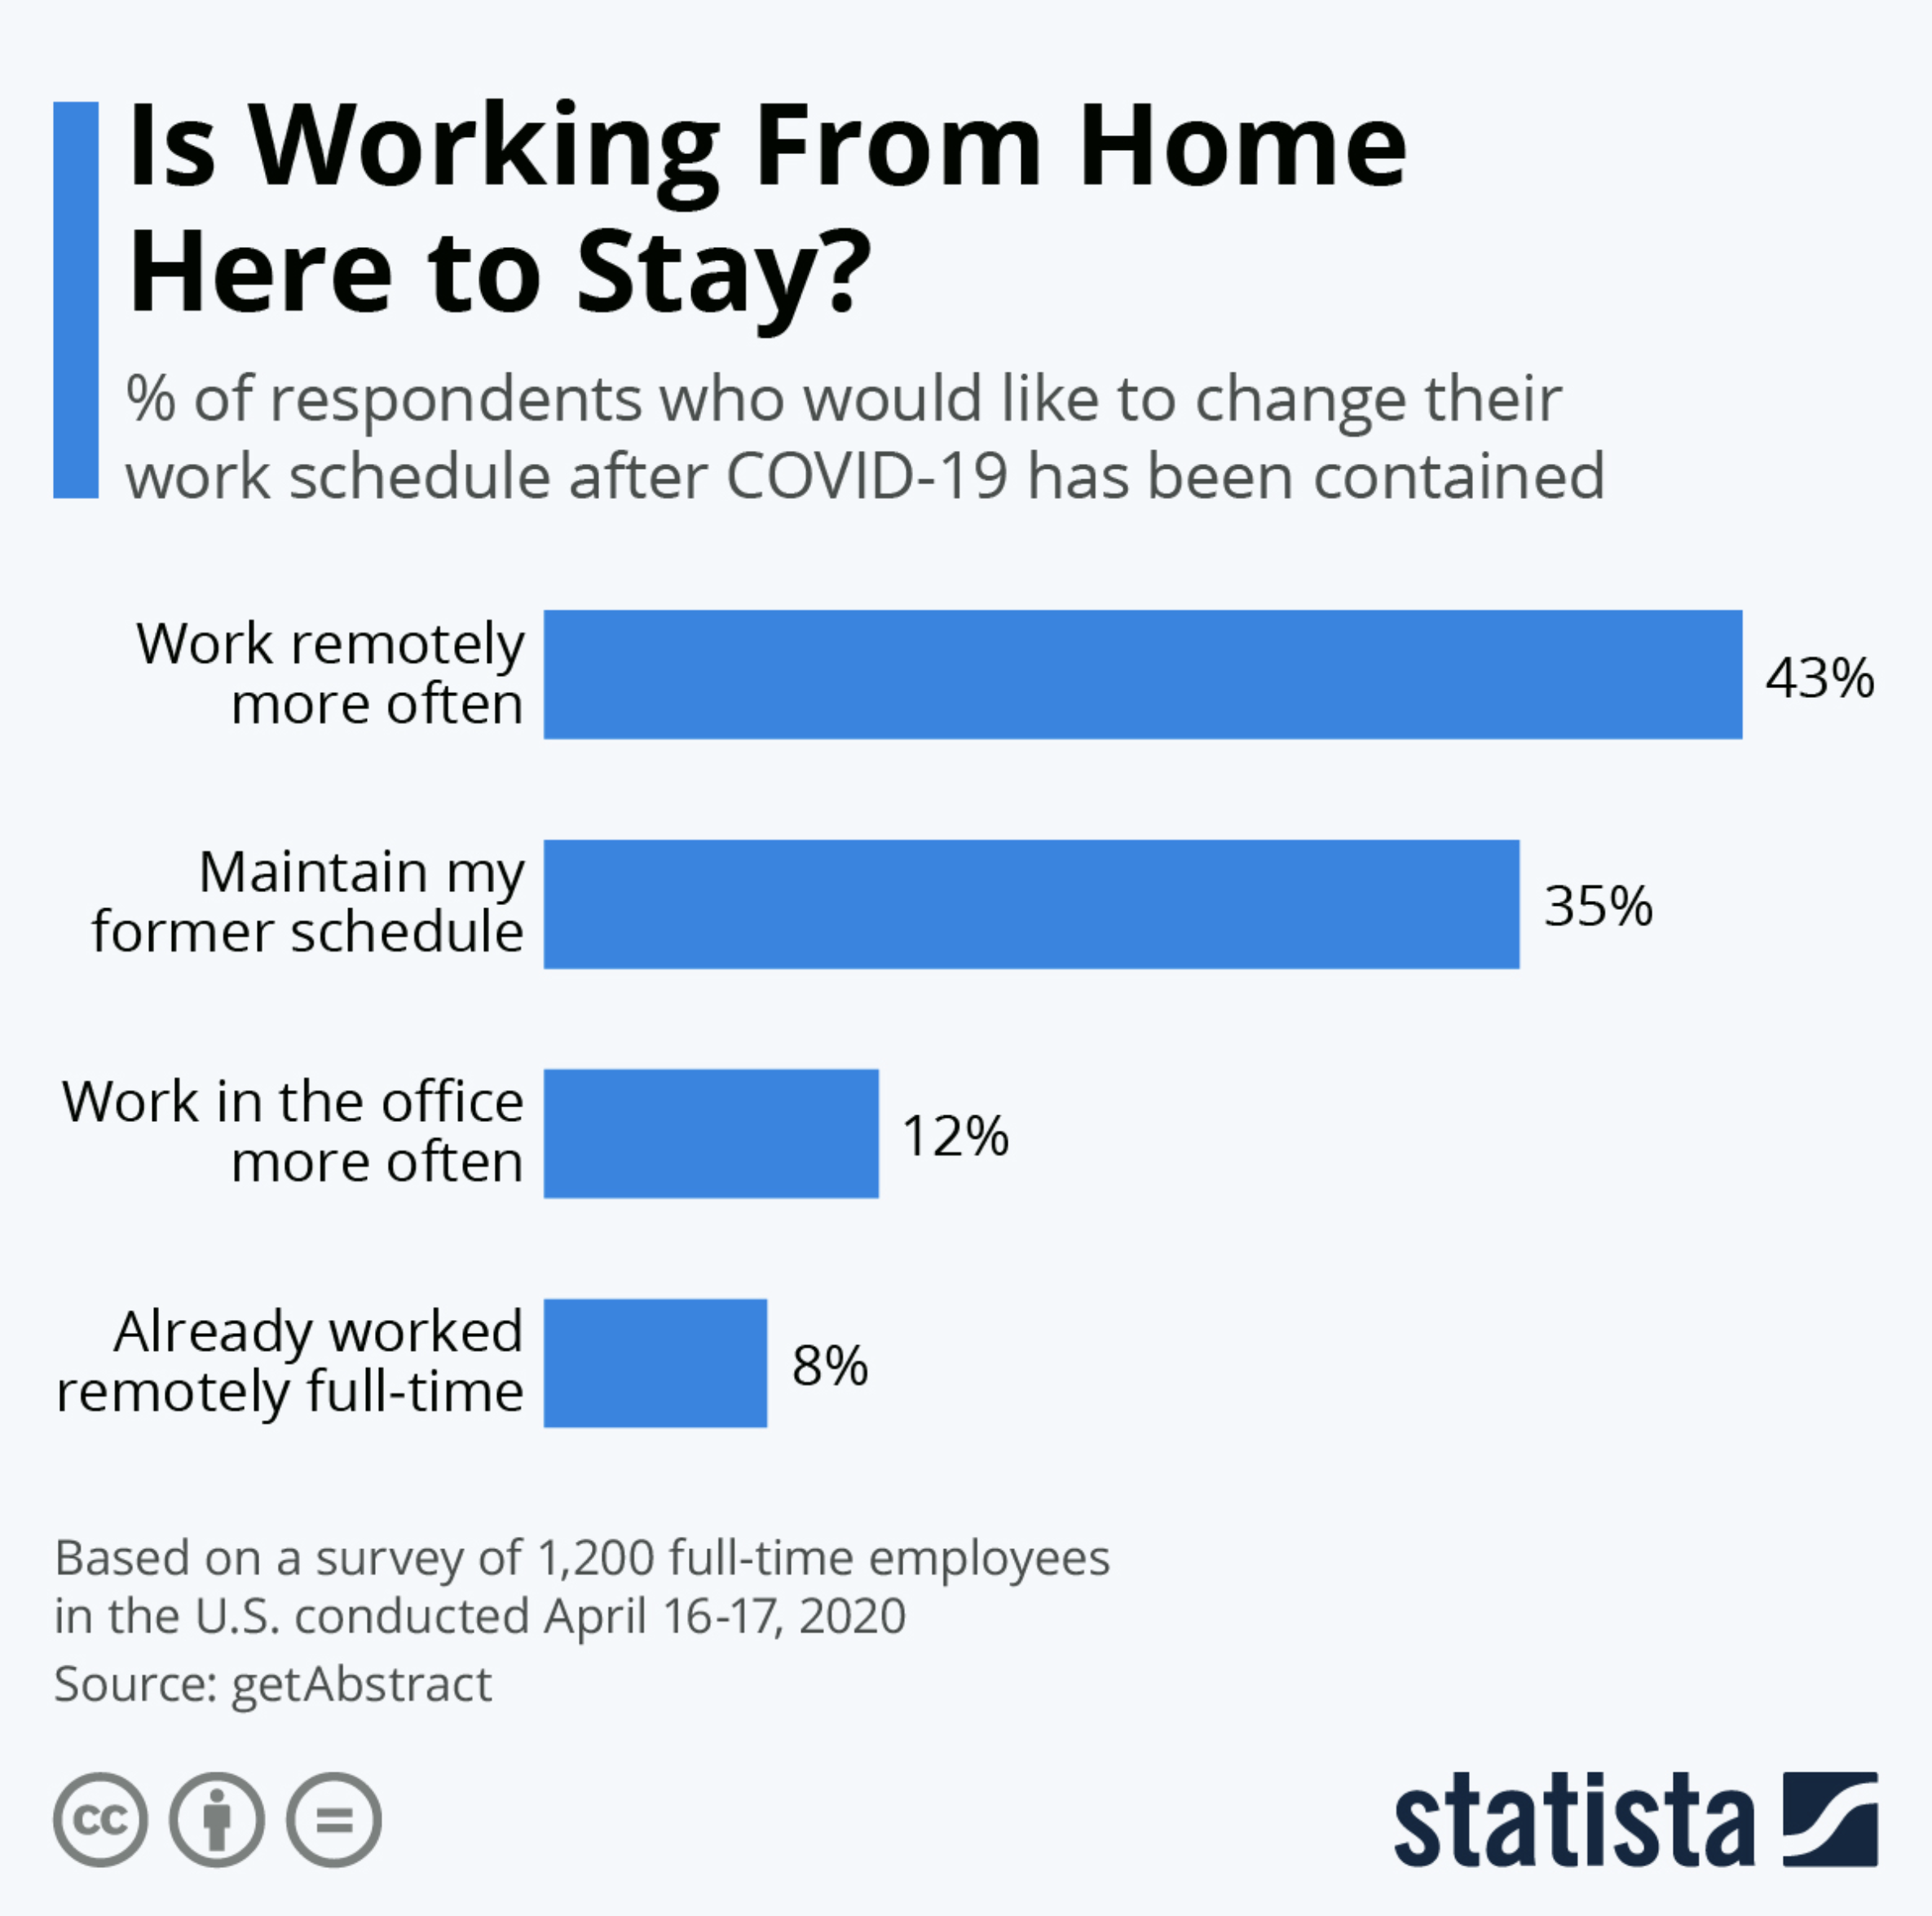 Attitudes towards working from home have shifted markedly